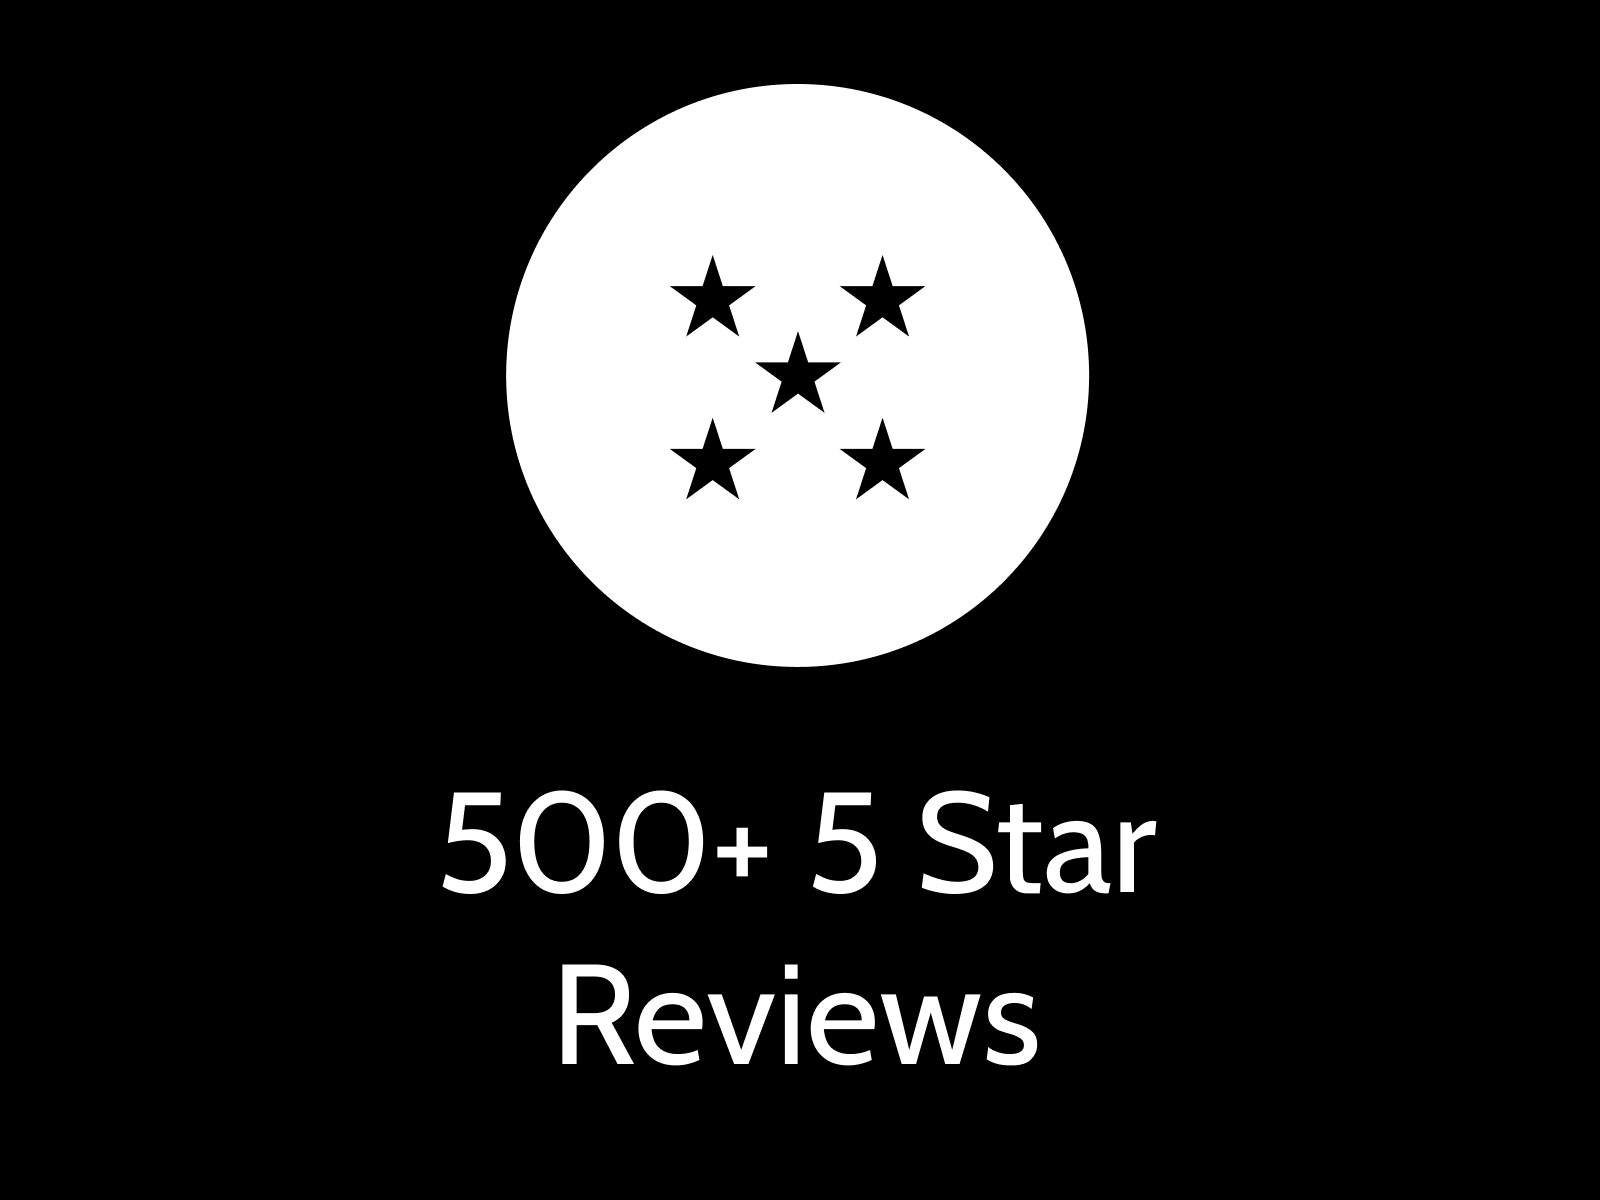 500+ 5 star reviews